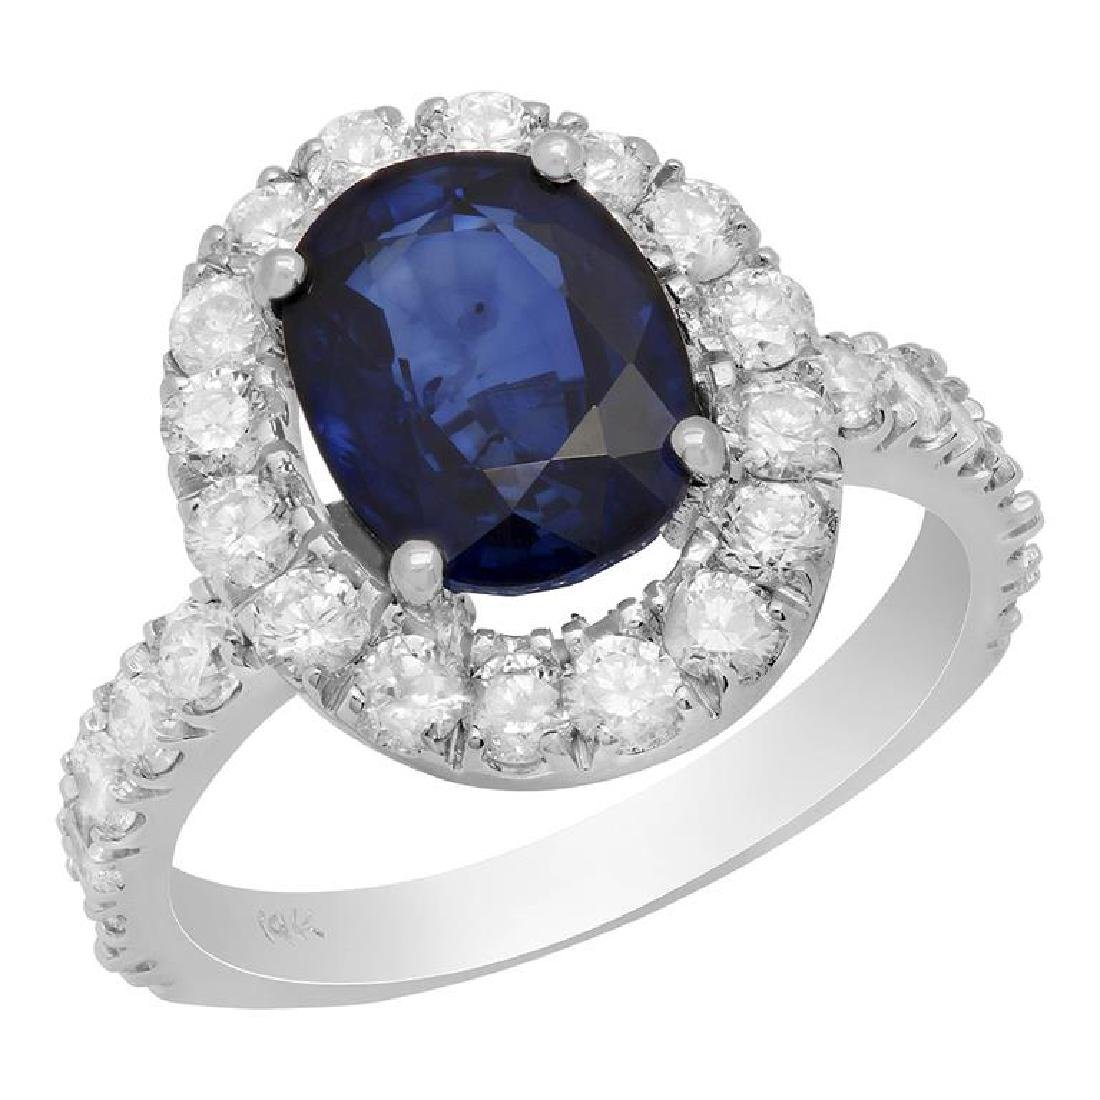 14k White Gold 3.31ct Sapphire 1.45ct Diamond Ring